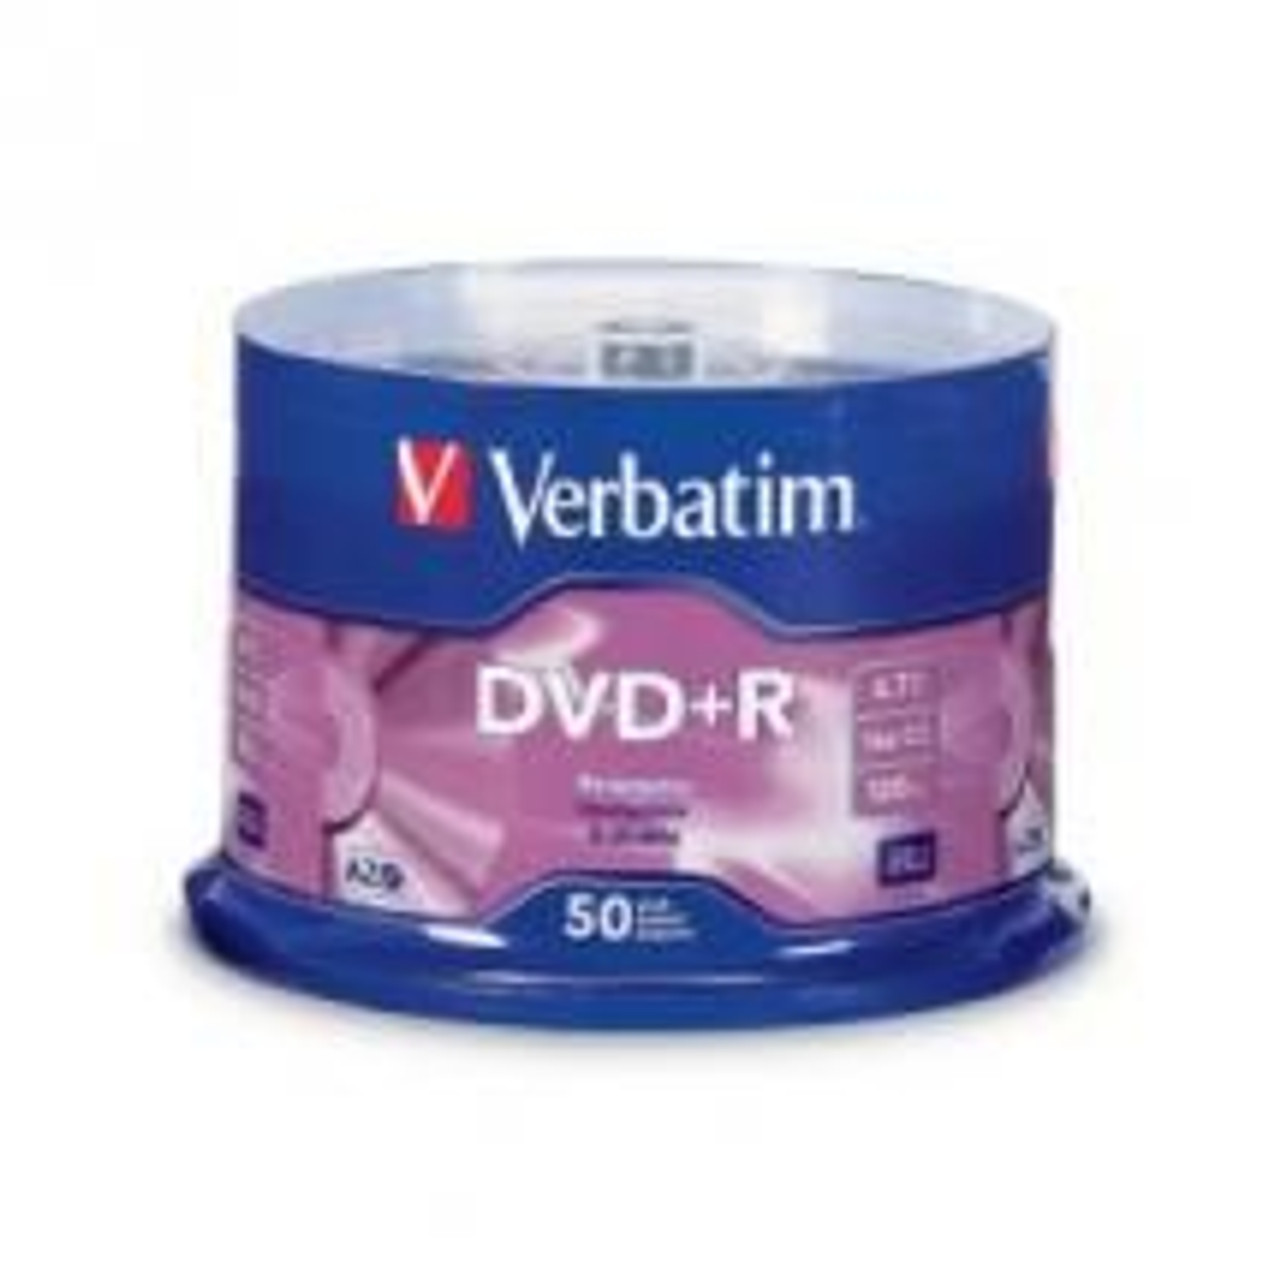 Product image for Verbatim DVD+R 4.7GB 50Pk 16X 95037   CX Computer Superstore